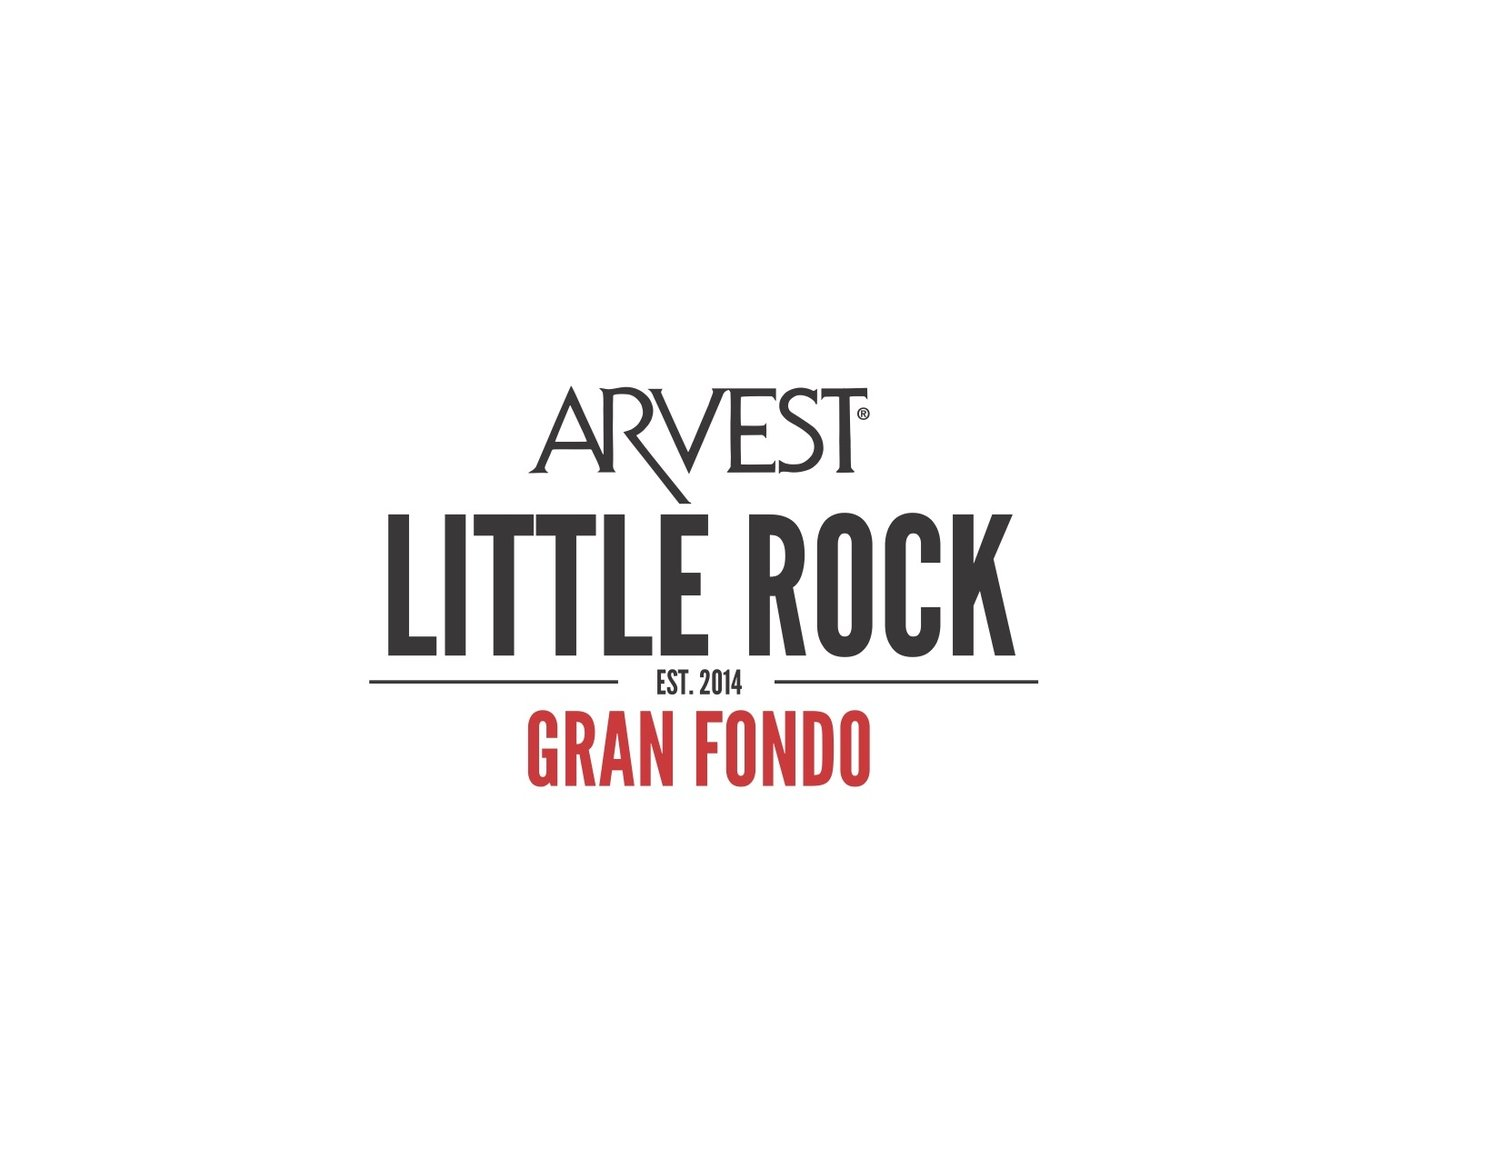 Arvest Little Rock Gran Fondo 2018